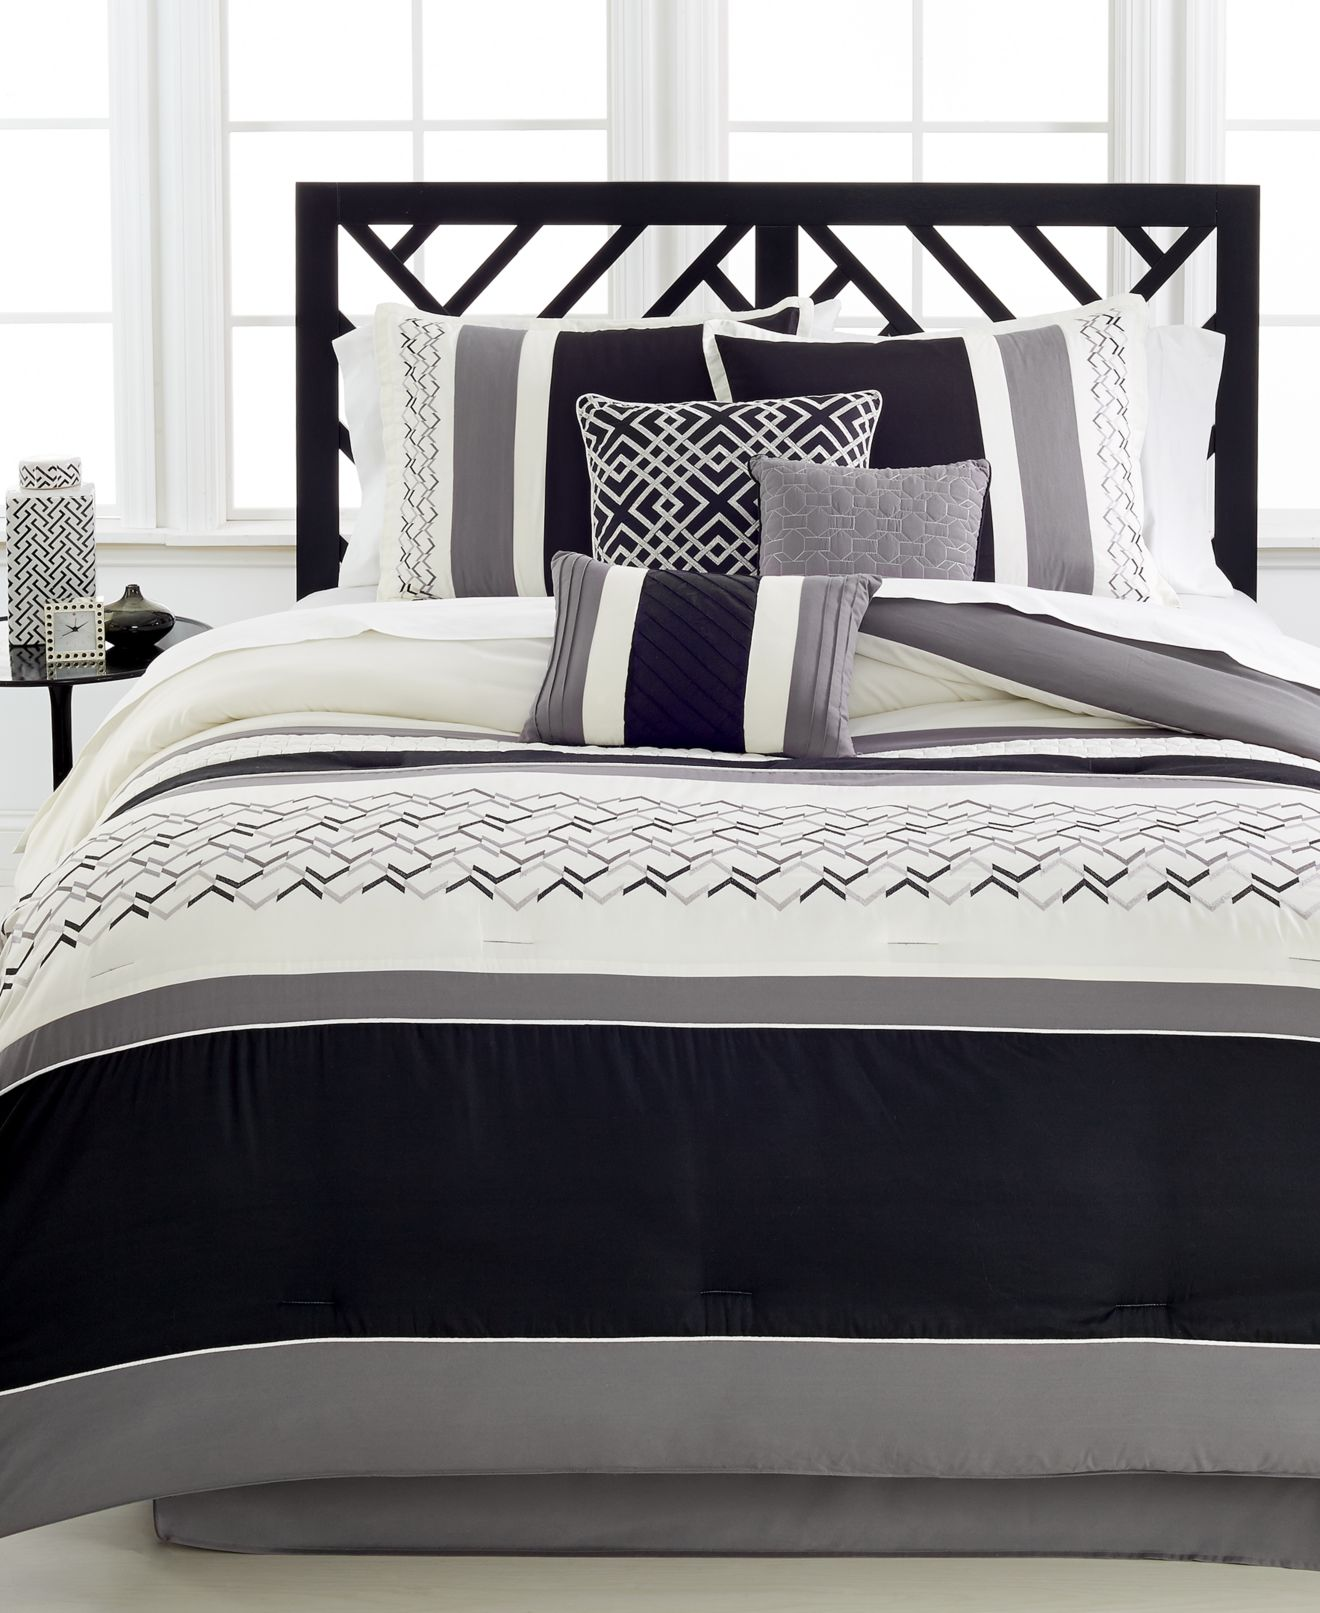 hallmart collectibles bed in a bag and comforter sets queen king fletcher 7 pc comforter set created for macy s